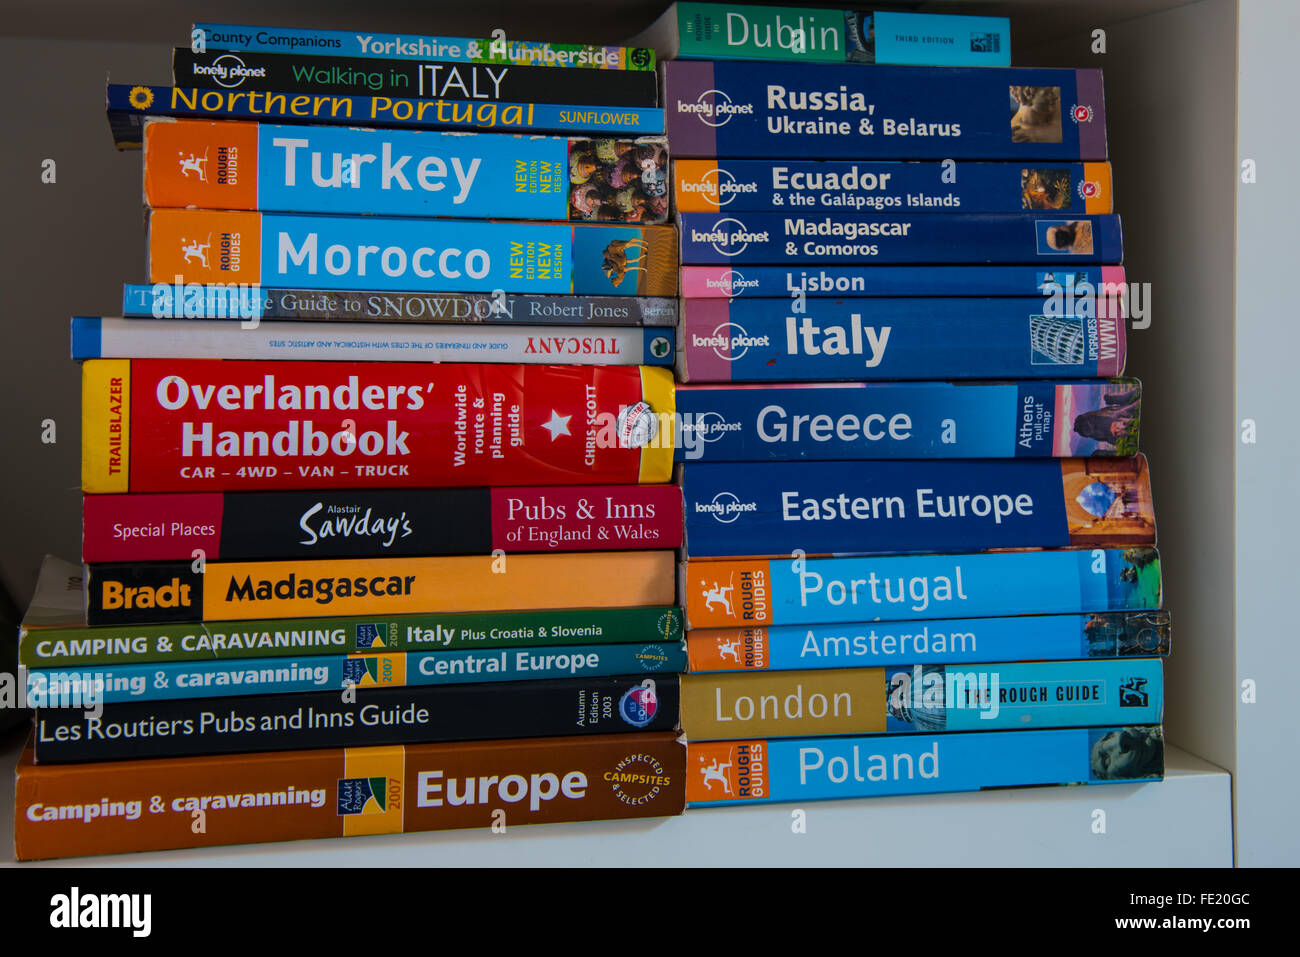 Travel guides - Stock Image